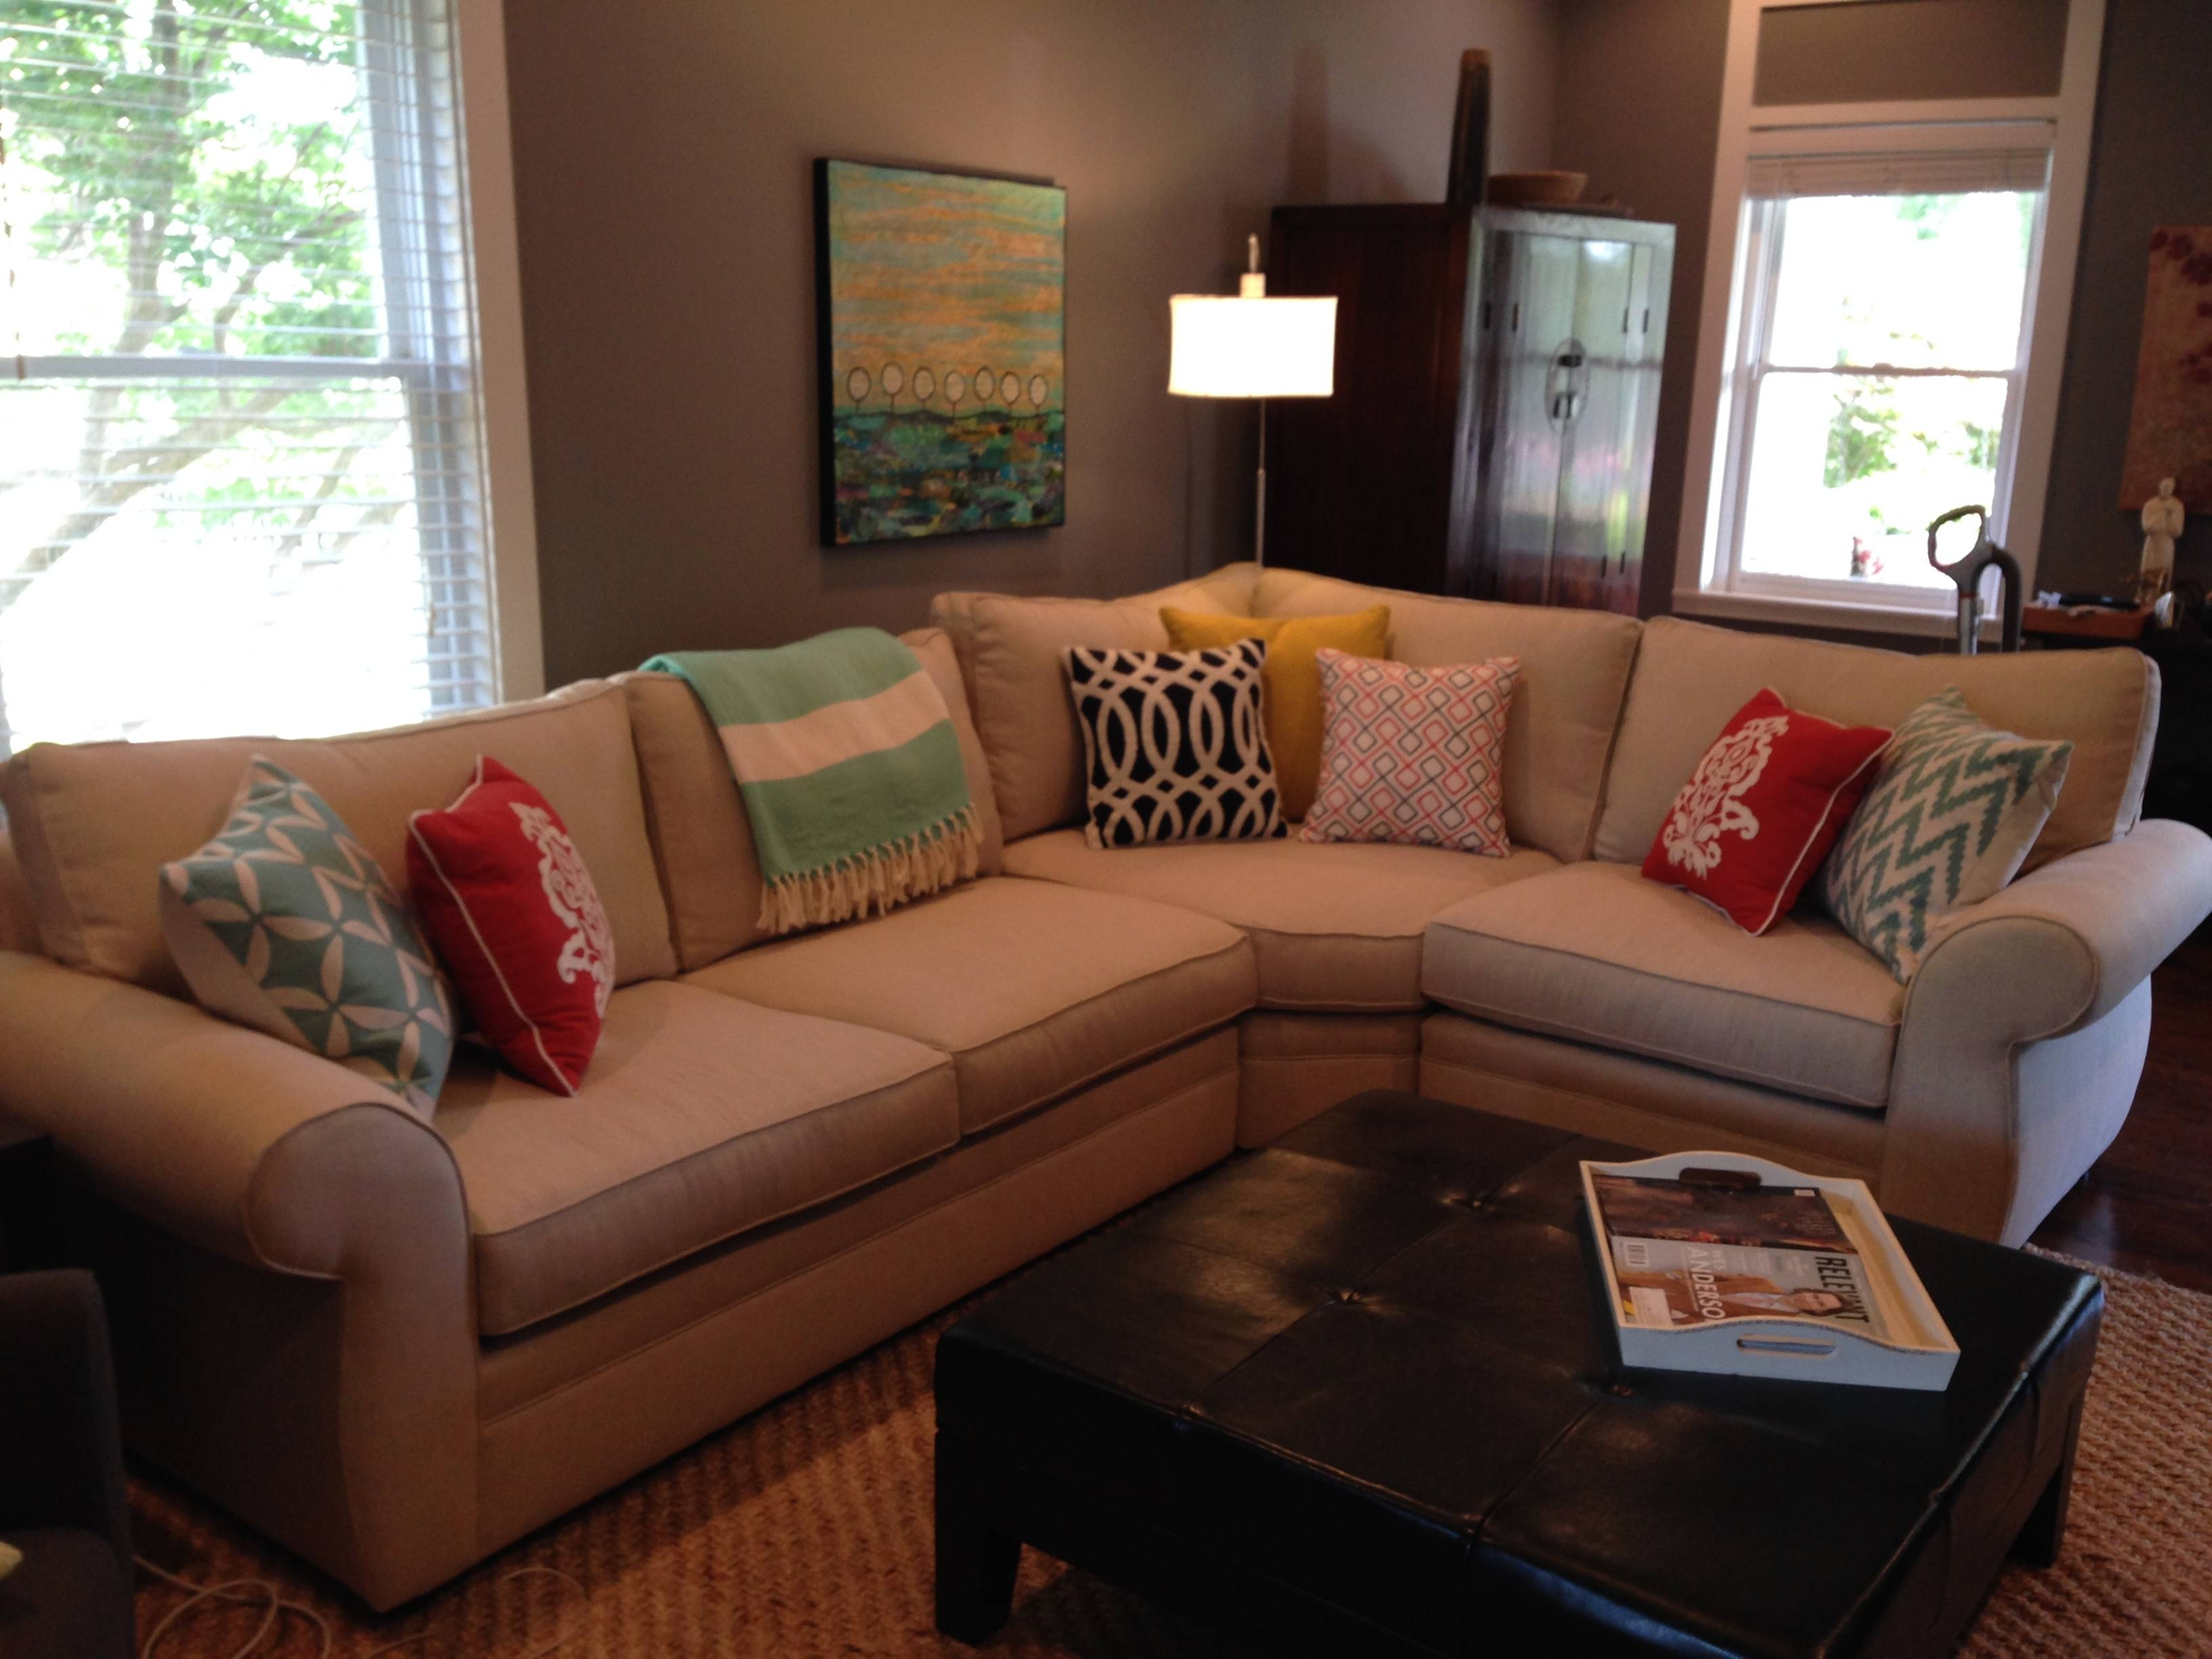 Pottery Barn Sofas. Elegant Remodels Ideas And Living With Cool within Pottery Barn Pearce Sectional Sofas (Image 9 of 15)